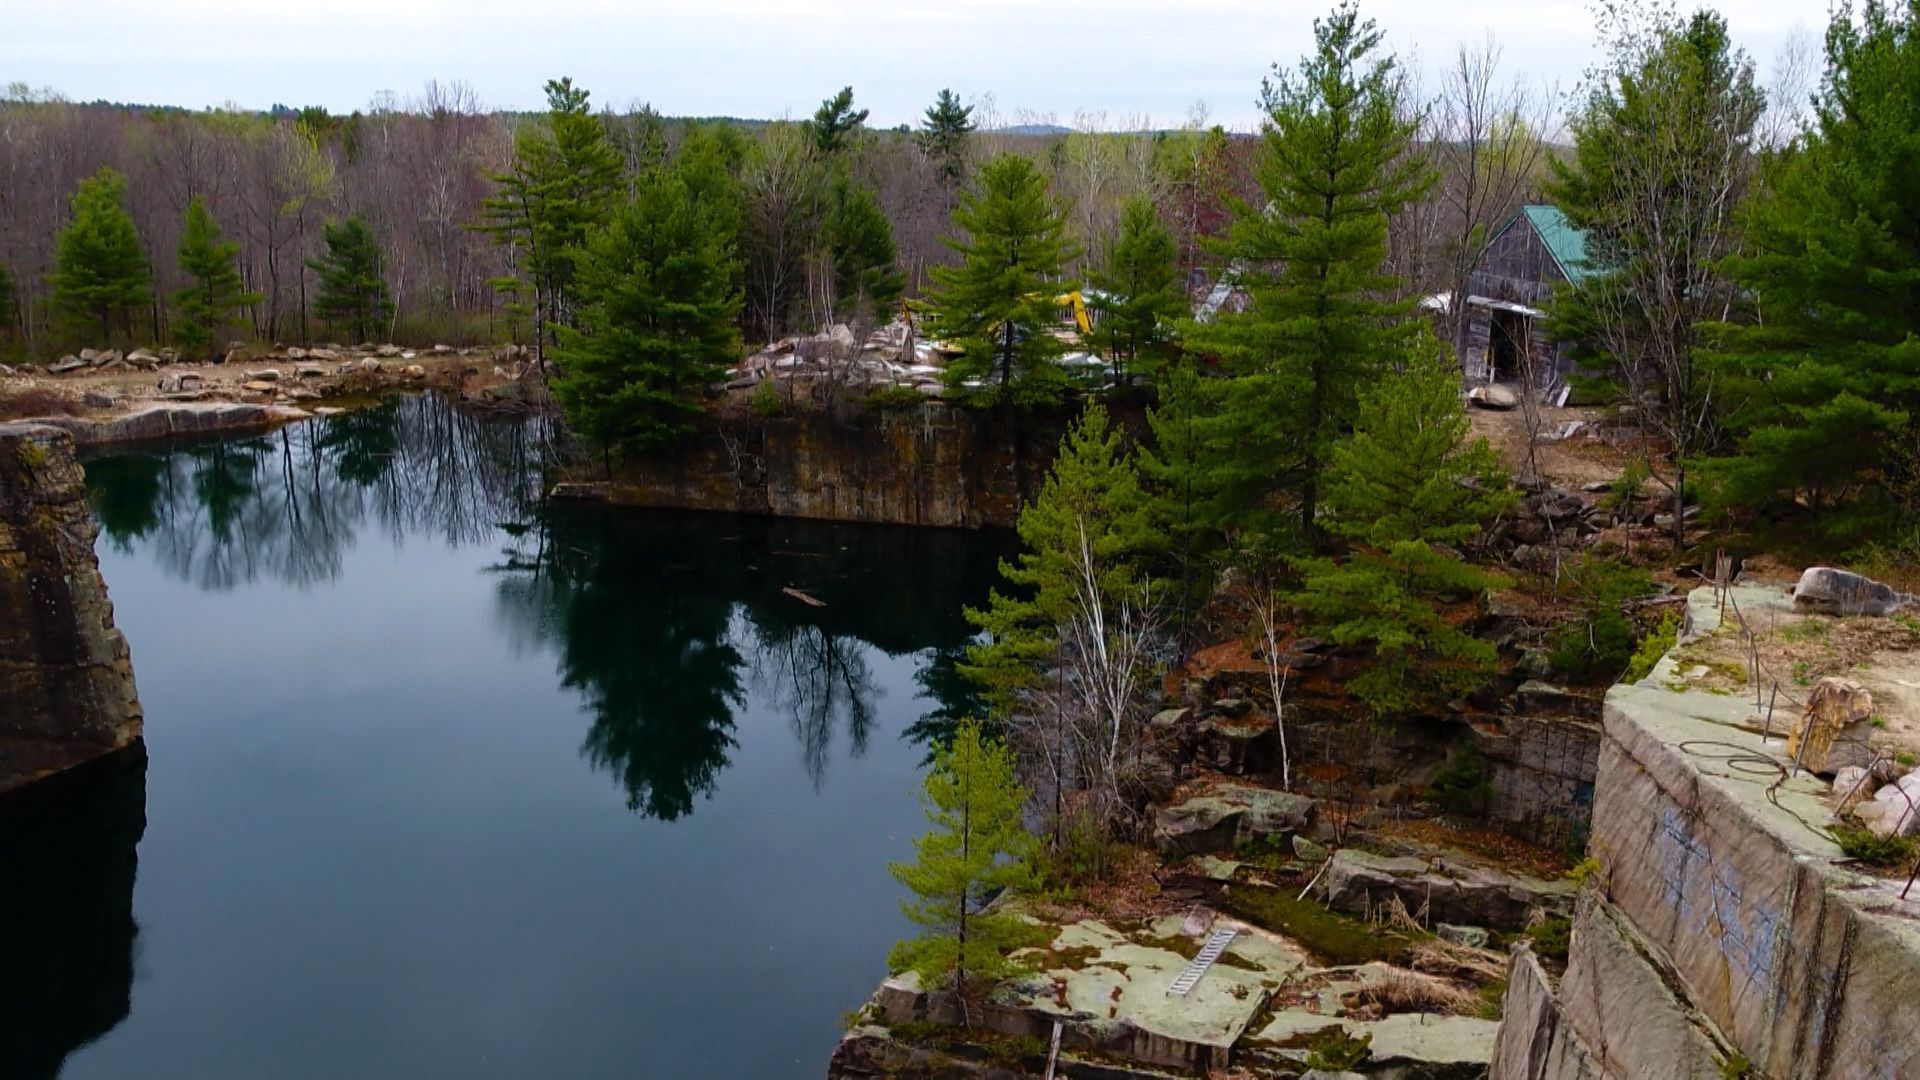 Maine quarry mines rare granite for Smithsonian museum's renovations